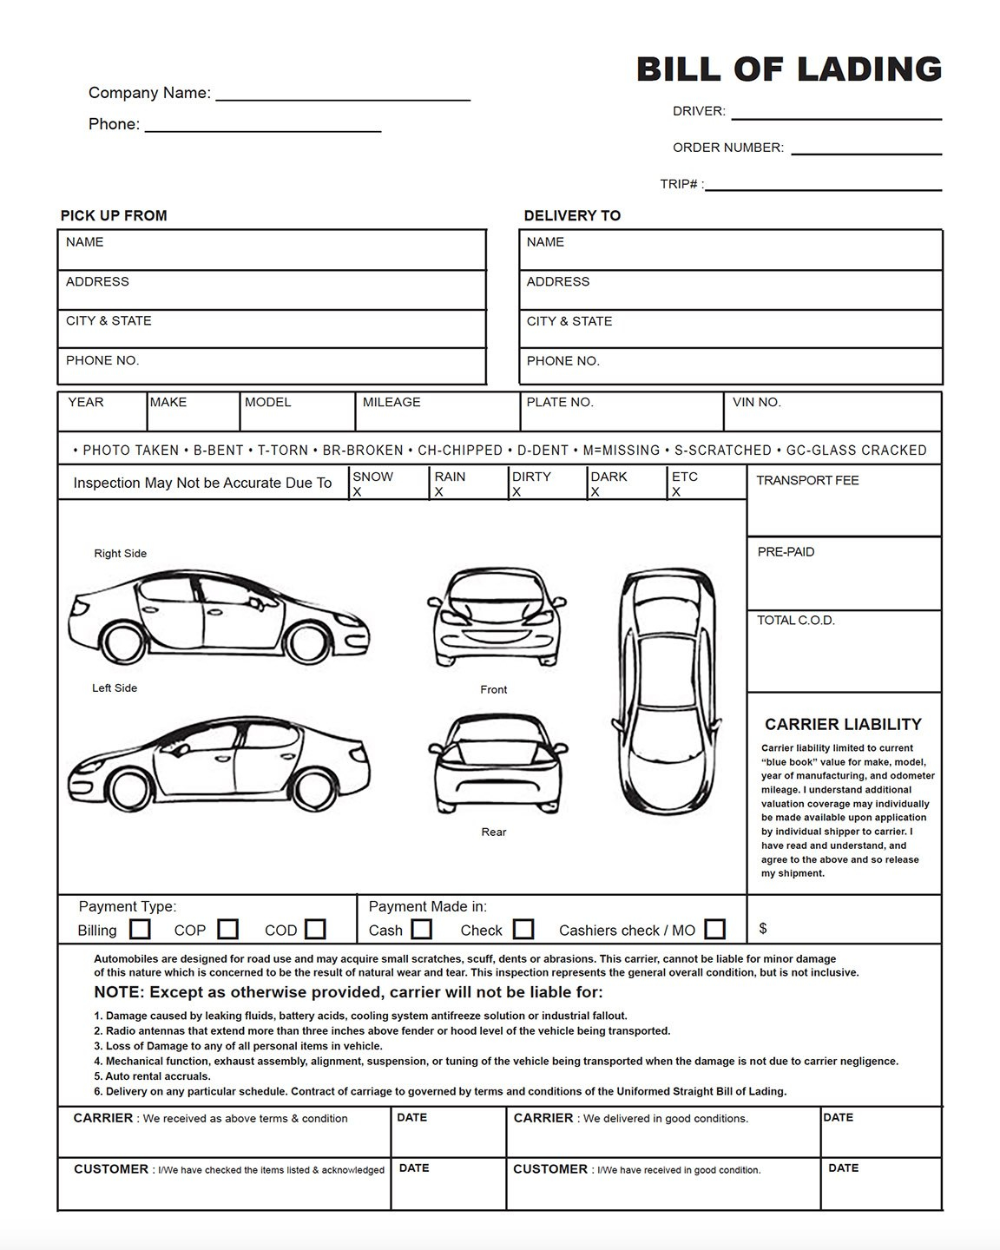 Auto Transport Bill Of Lading Print Quality Vehicle Condition Intended For Truck Condition Report Template 10 Profe Report Template Bill Of Lading Templates